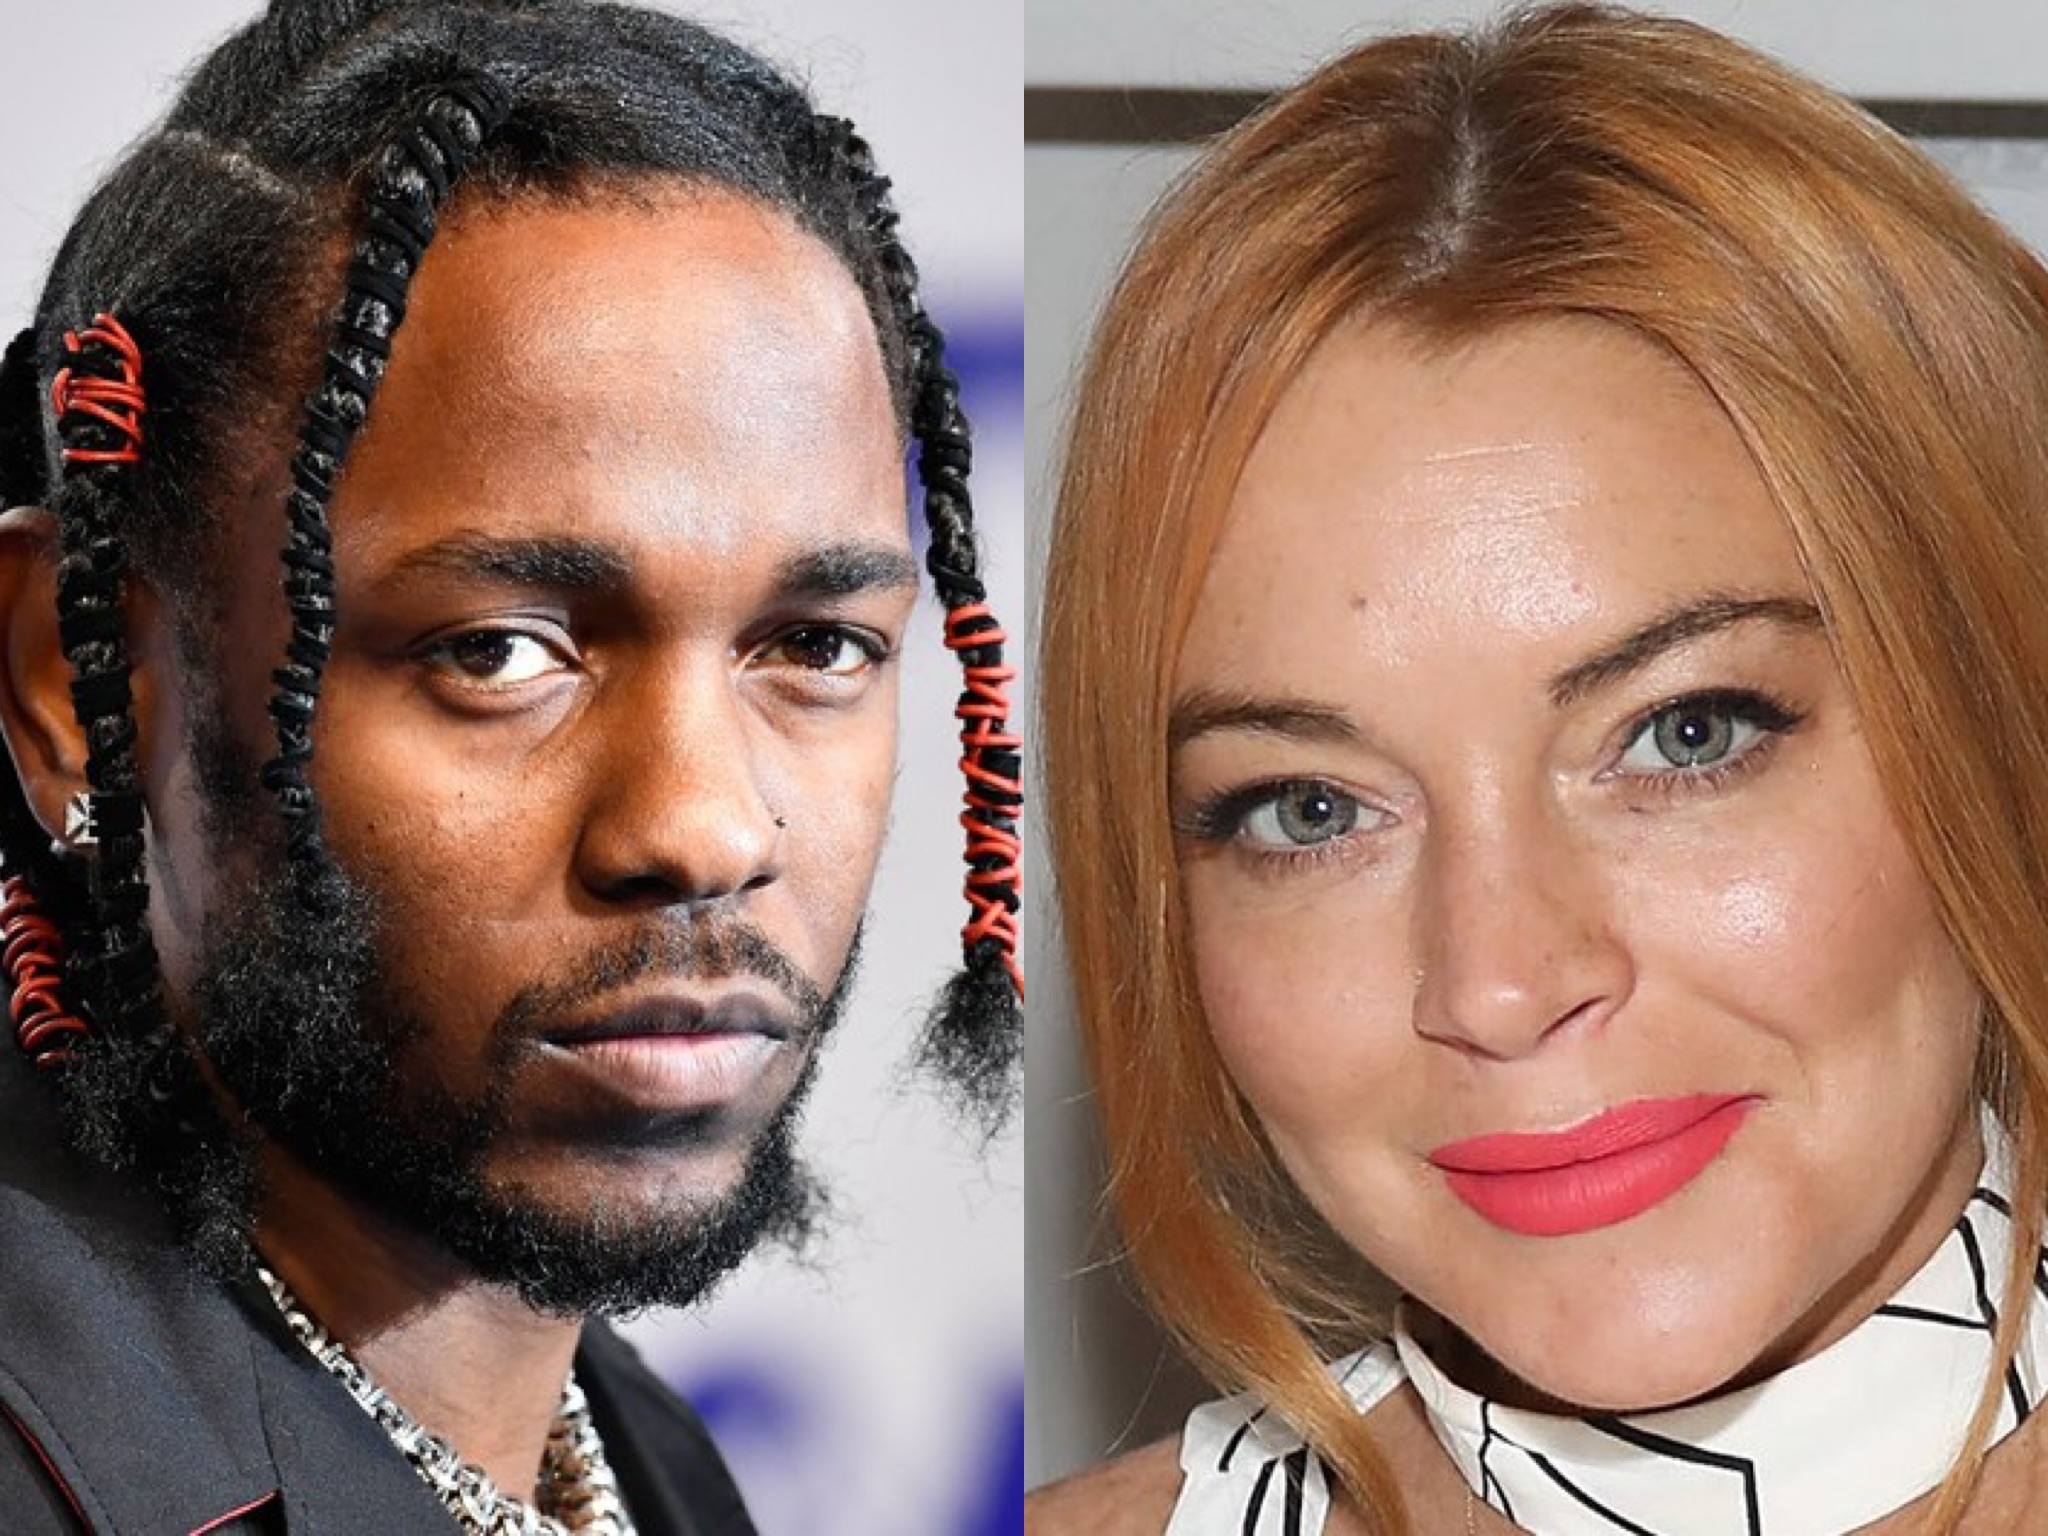 Lindsay Lohan Asked Kendrick Lamar to DM Her, Twitter Reacts